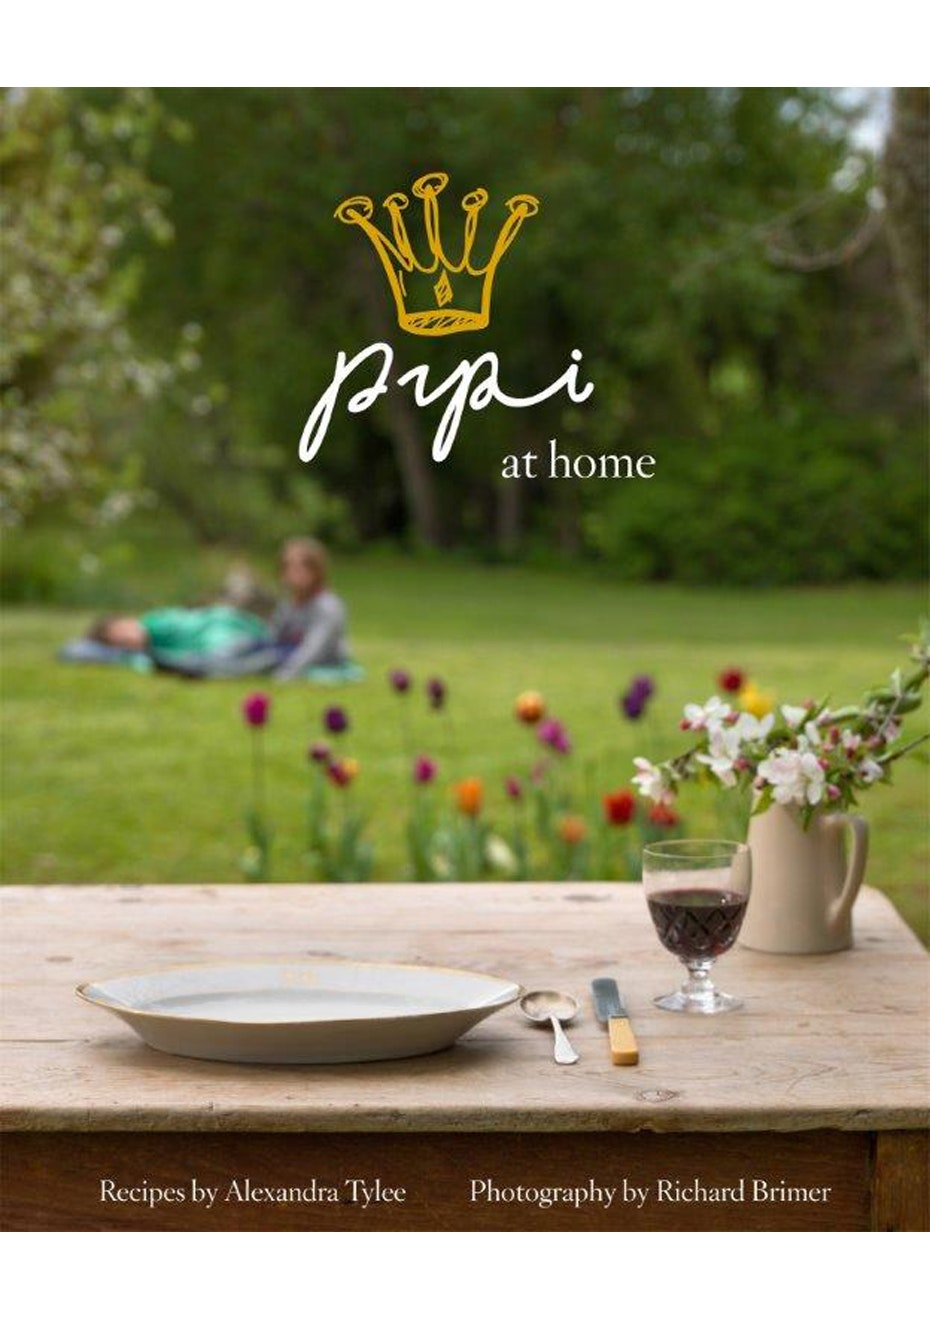 Pipi at Home, by Alexandra Tylee